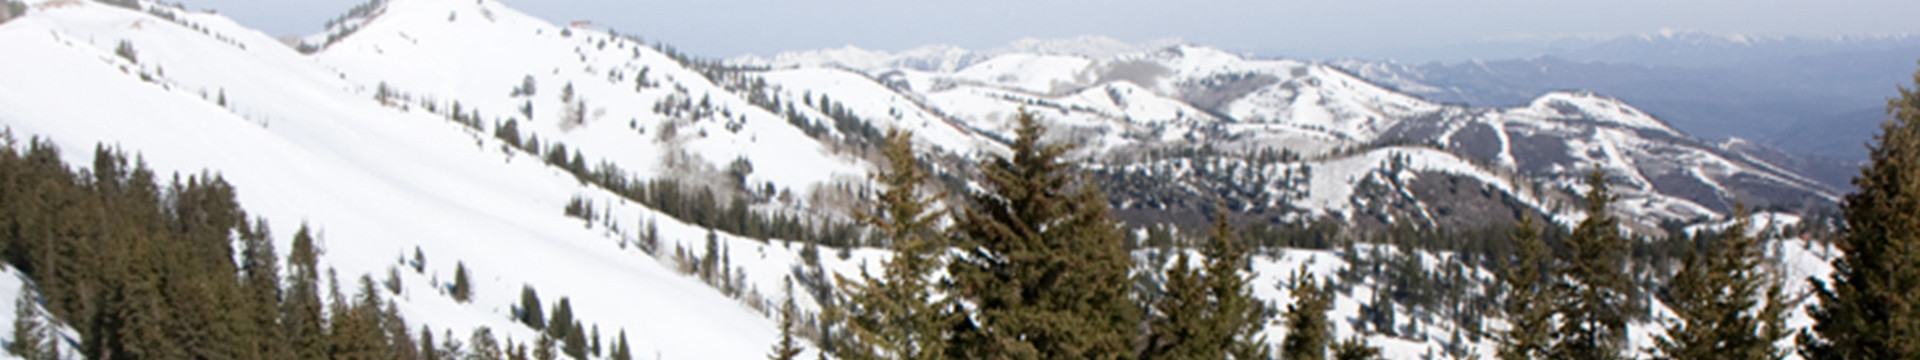 Accreditation & Certification Retreats In Park City - Park City Mountains